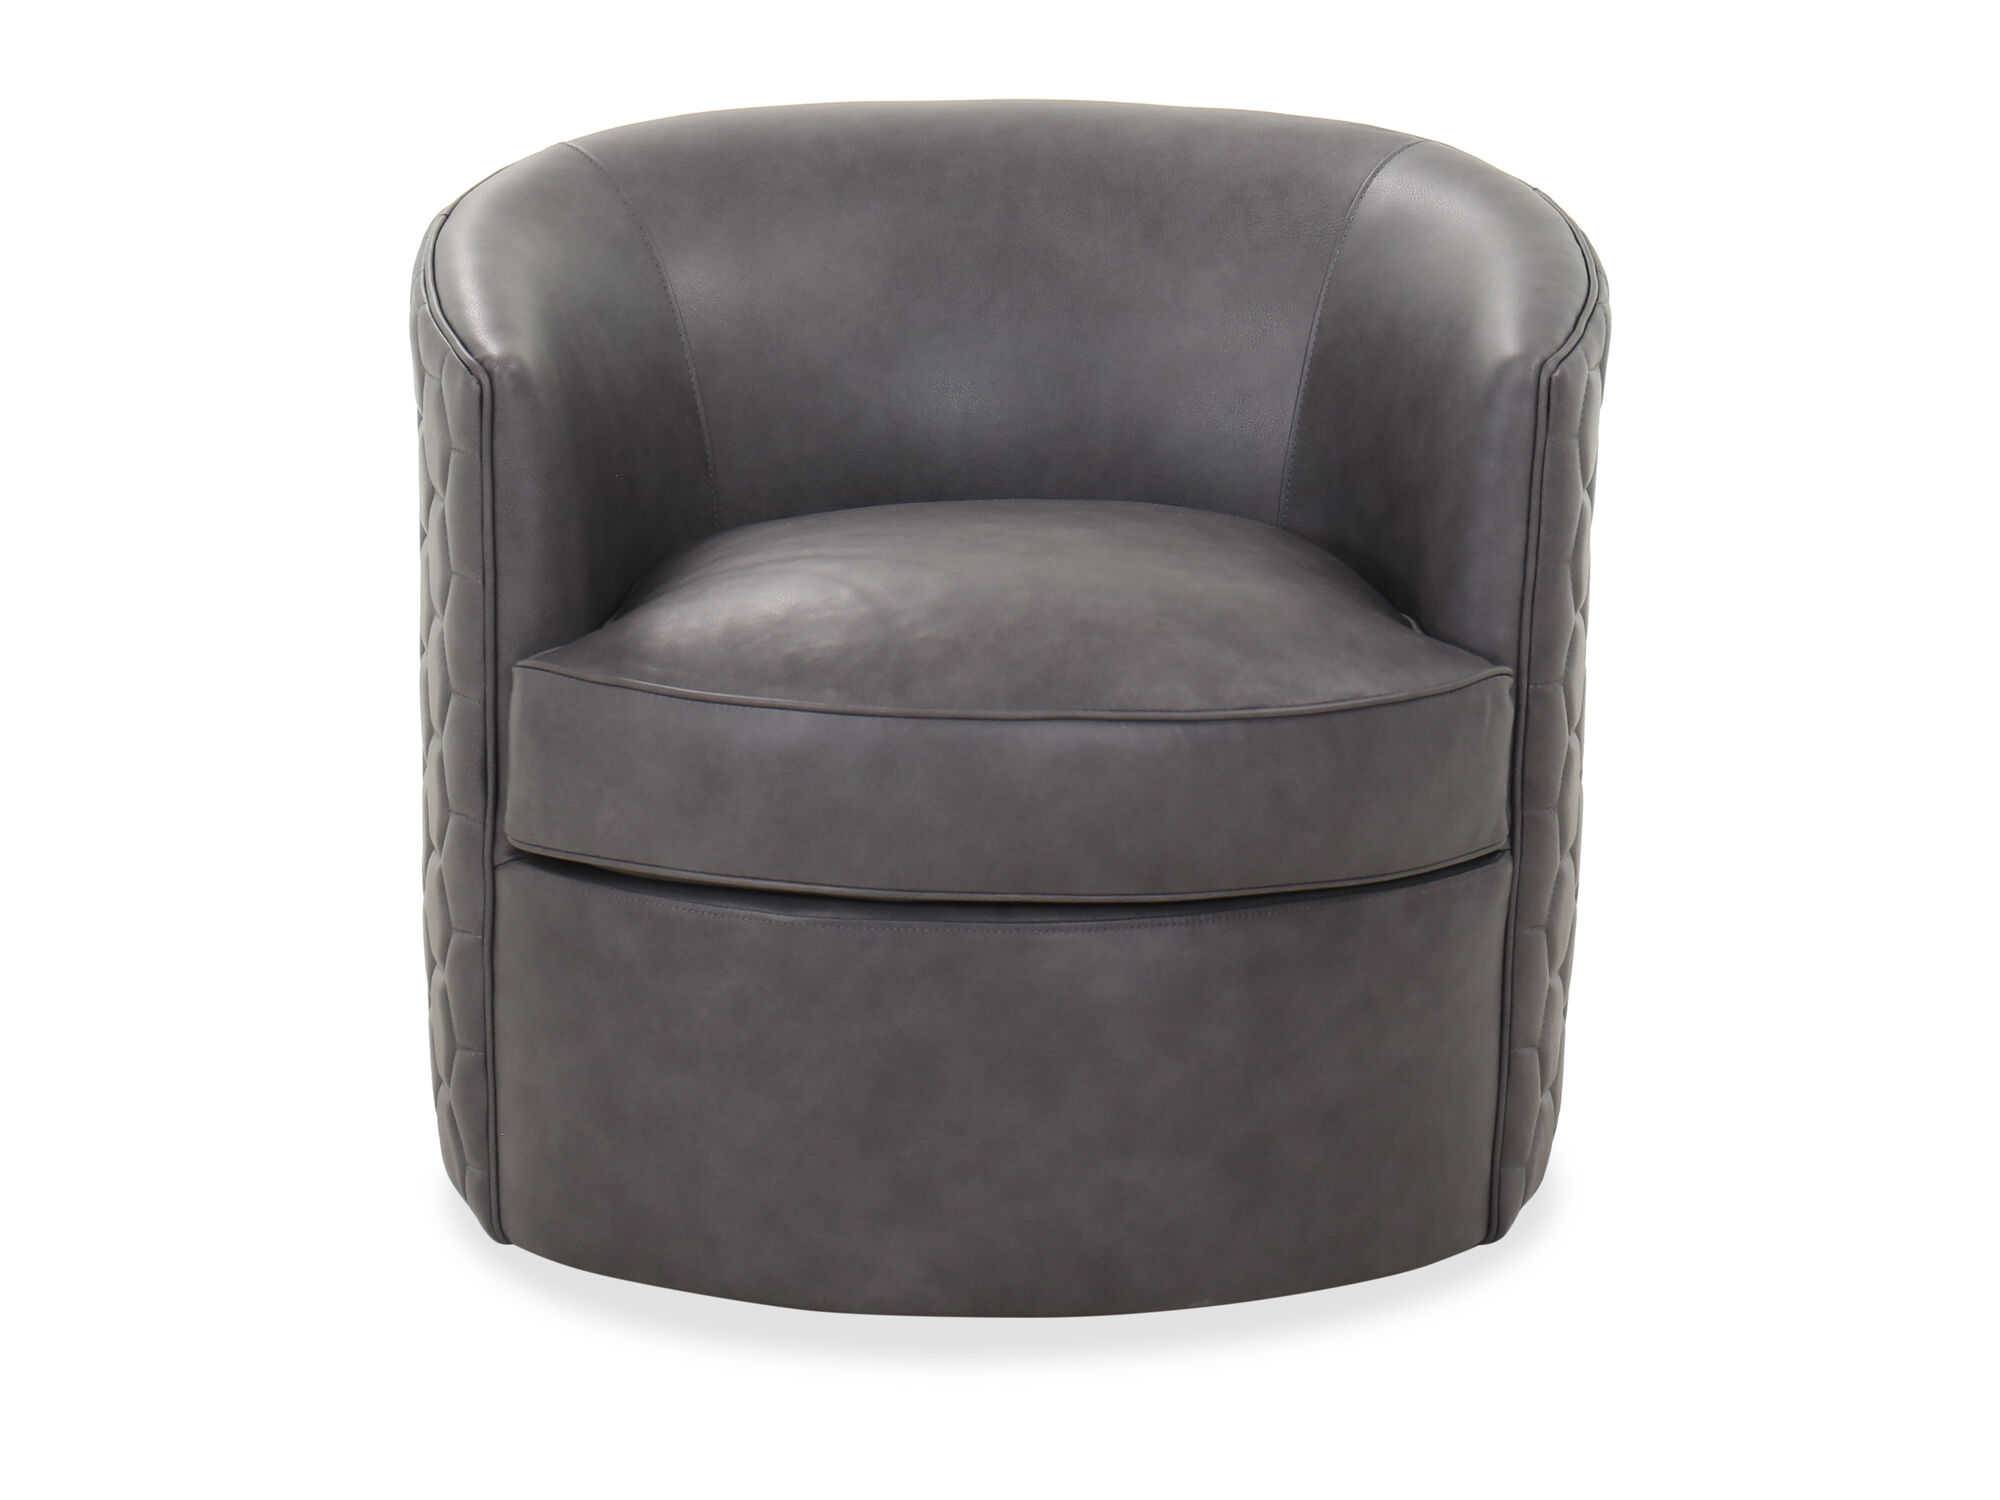 Casual 31 5 Leather Swivel Chair In Gray Mathis Brothers Furniture